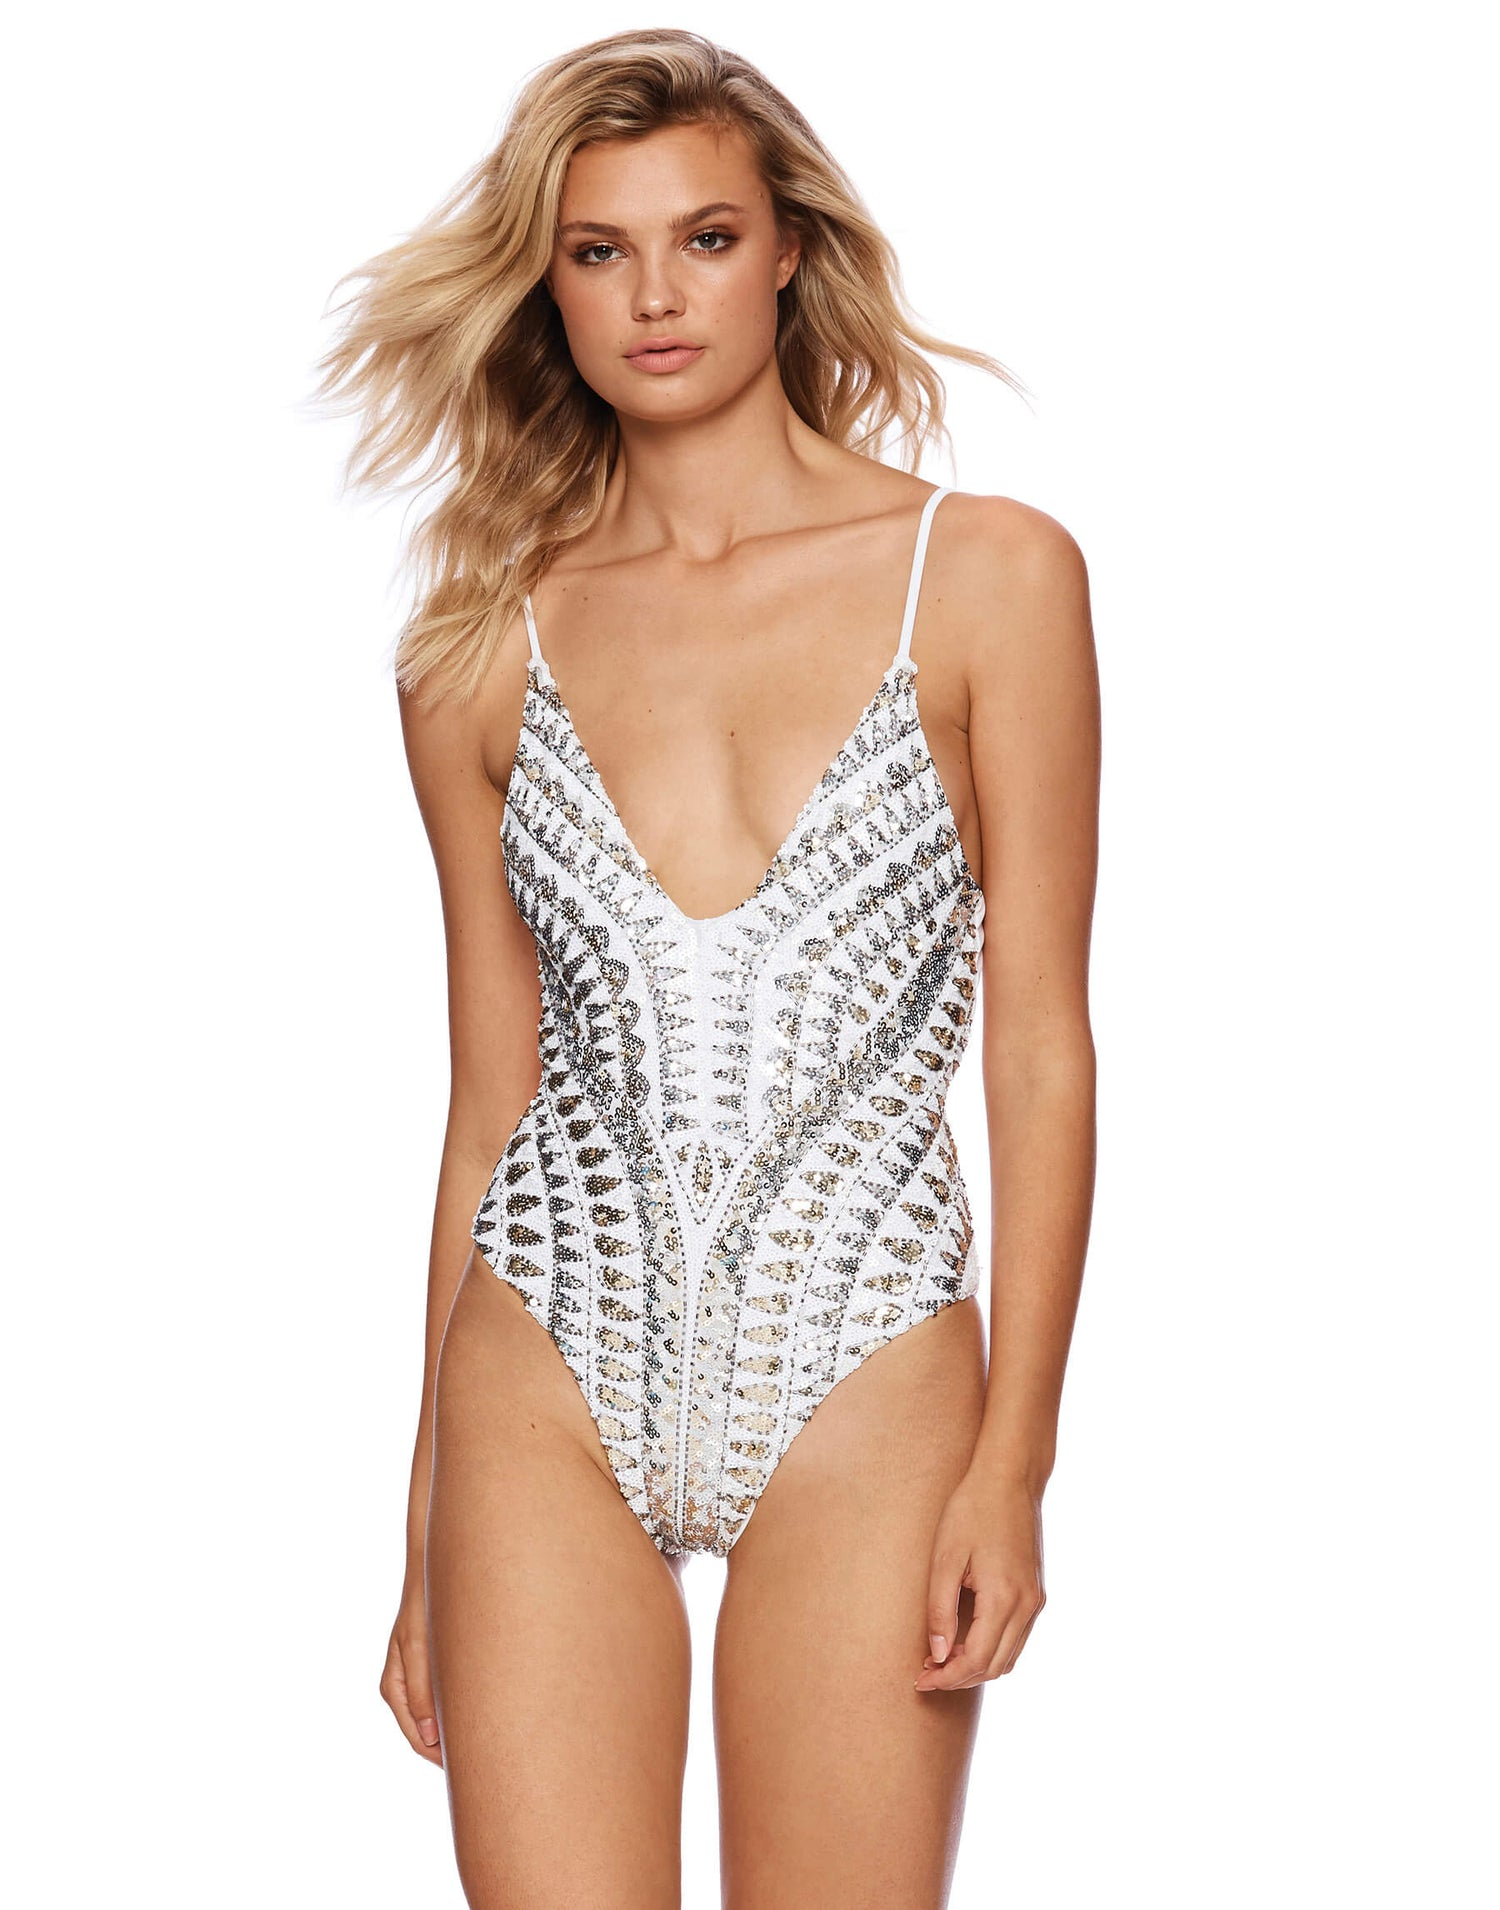 Sloane One Piece with Sequins in White - front view